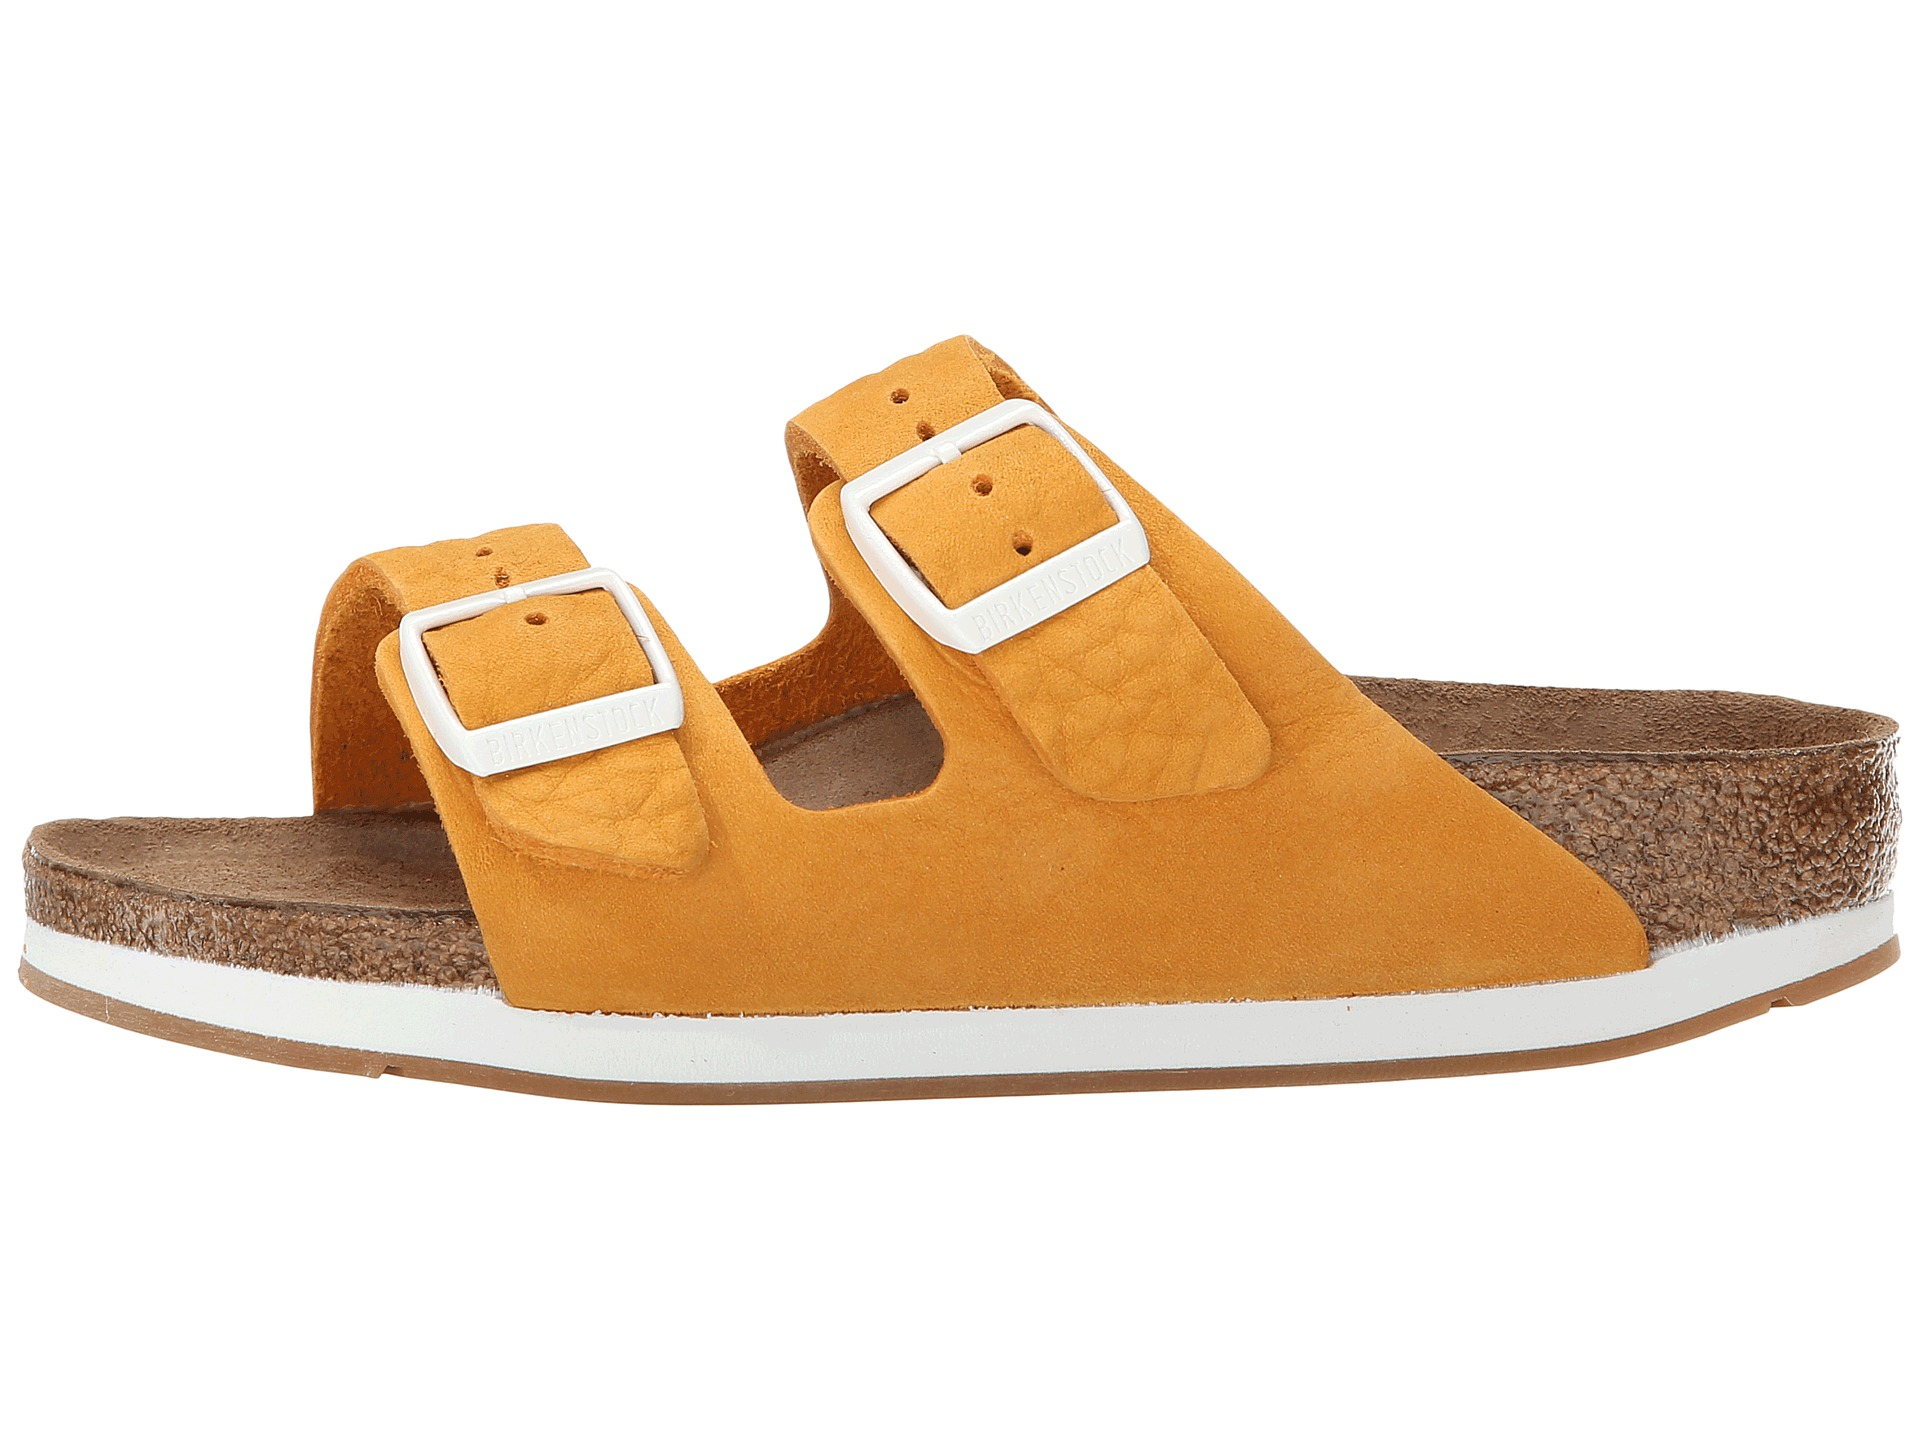 f99eed8d1bfd Lyst - Birkenstock Arizona Soft Footbed - Leather (unisex) in Orange